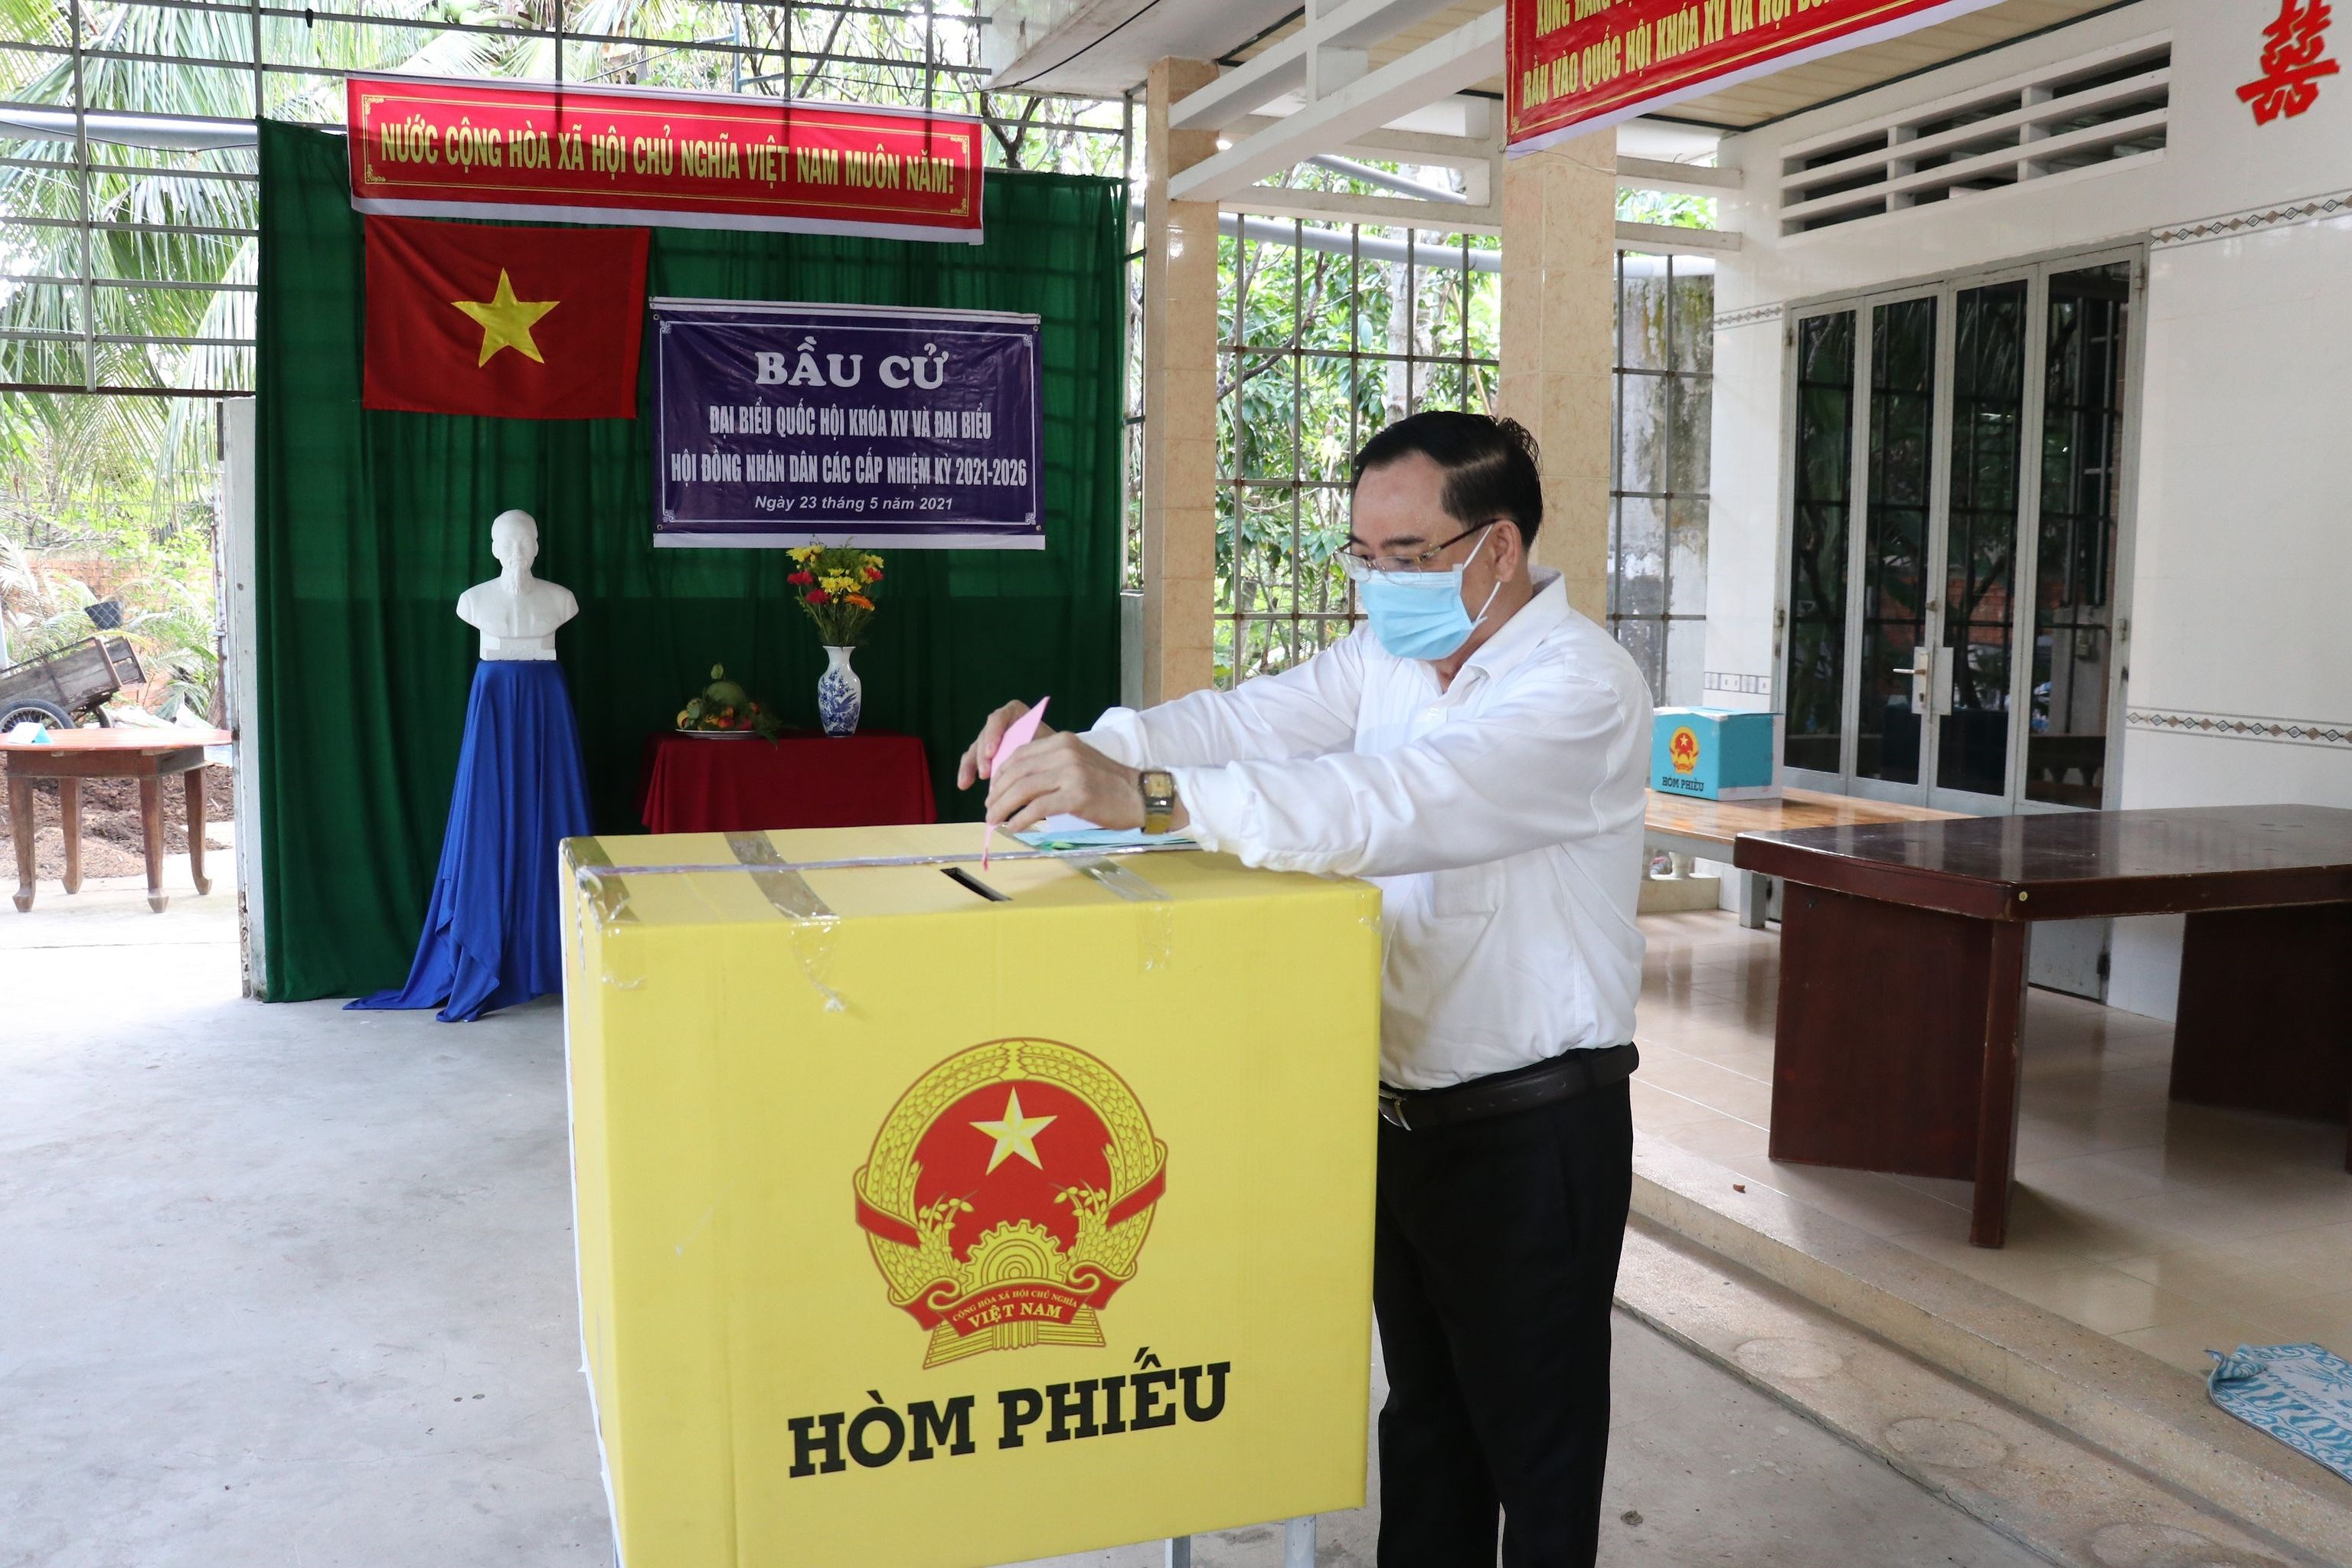 Voters nationwide cast ballots hinh anh 13